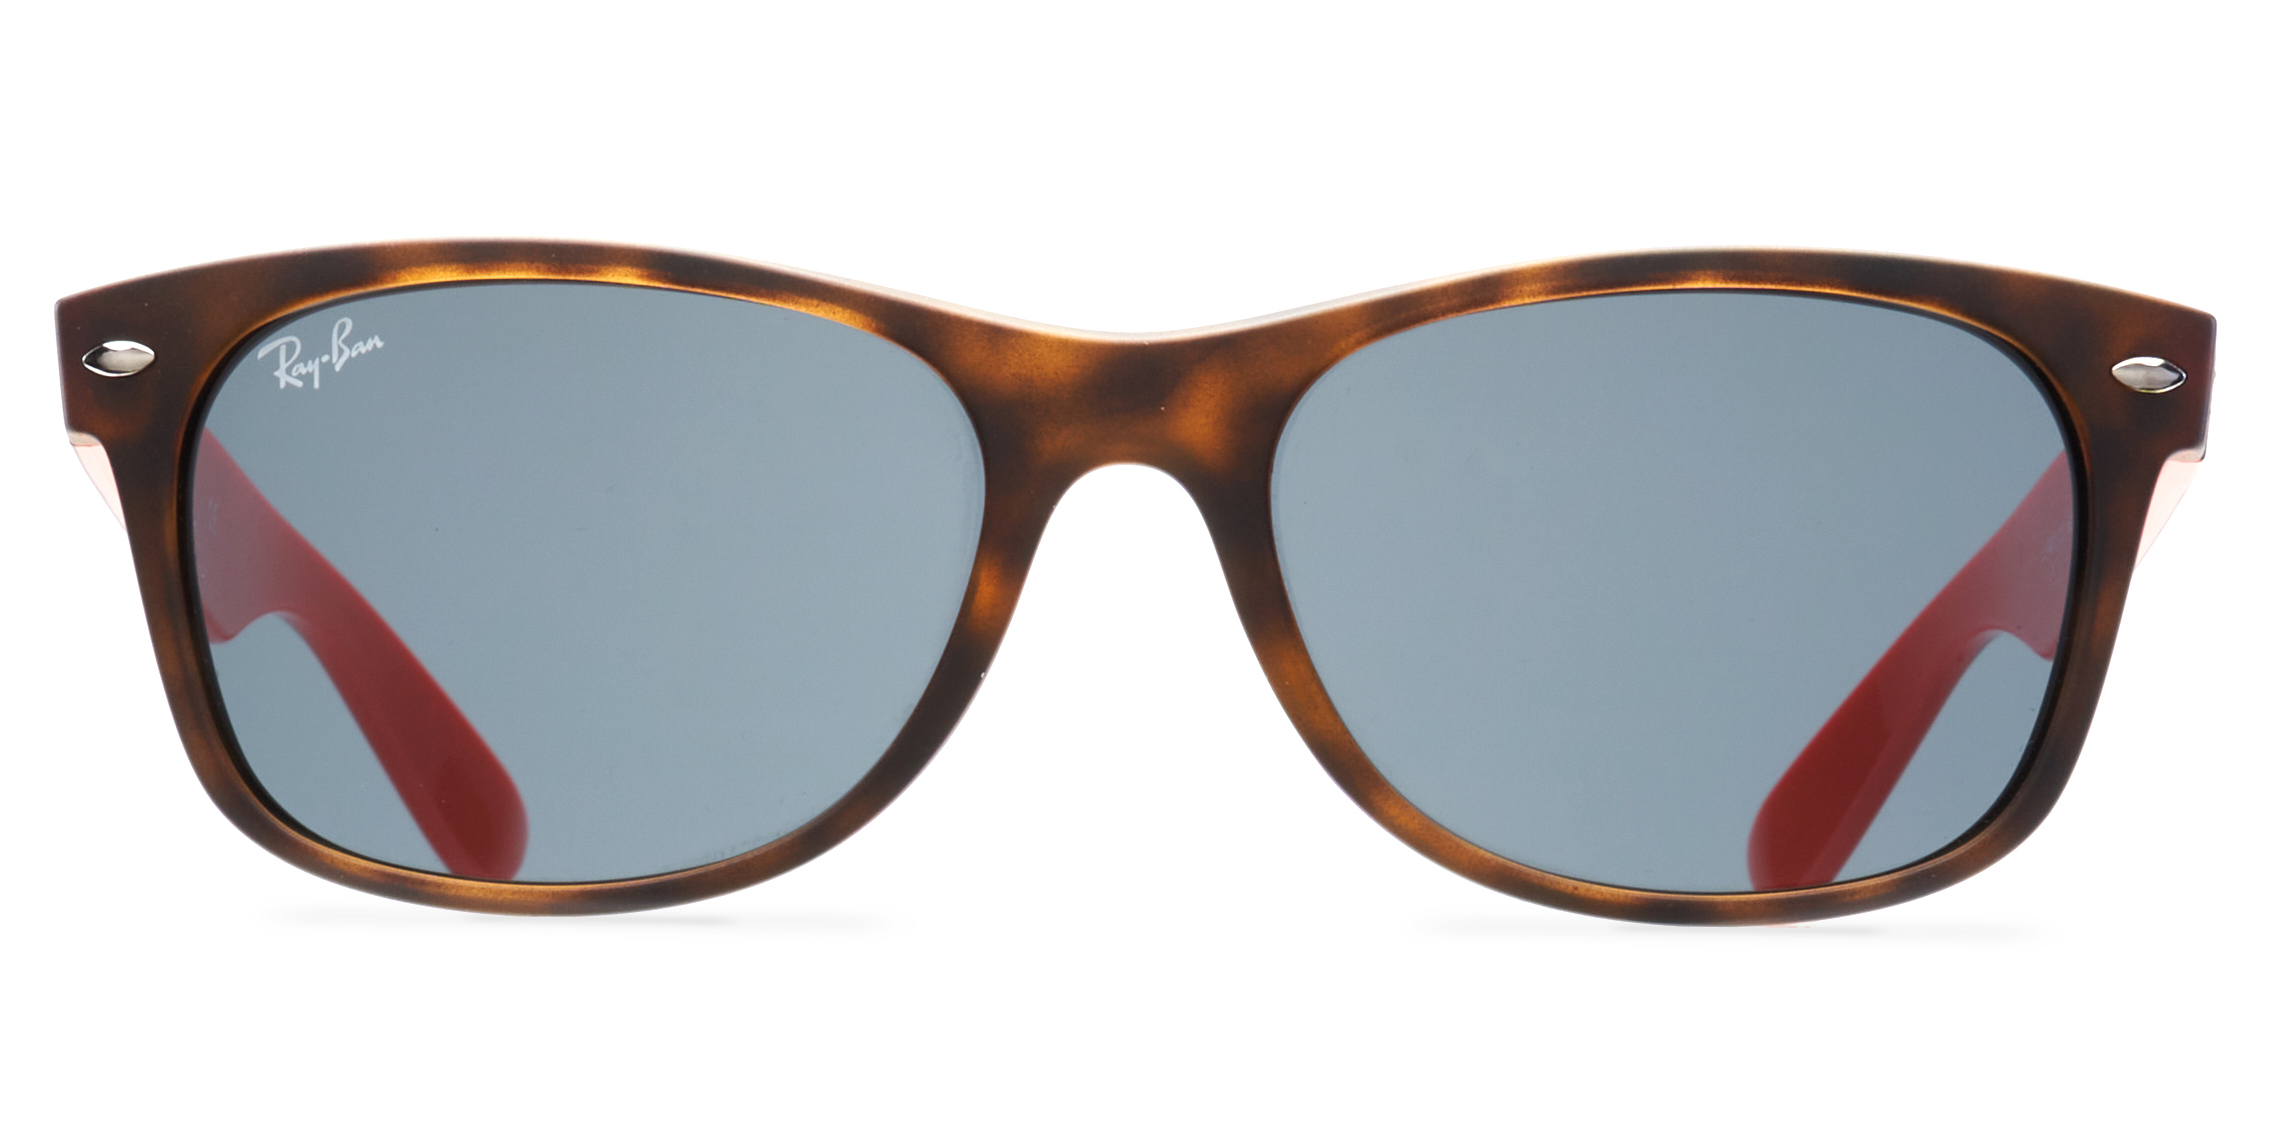 Ray Ban Sunglasses RB2132 6180/r5 55